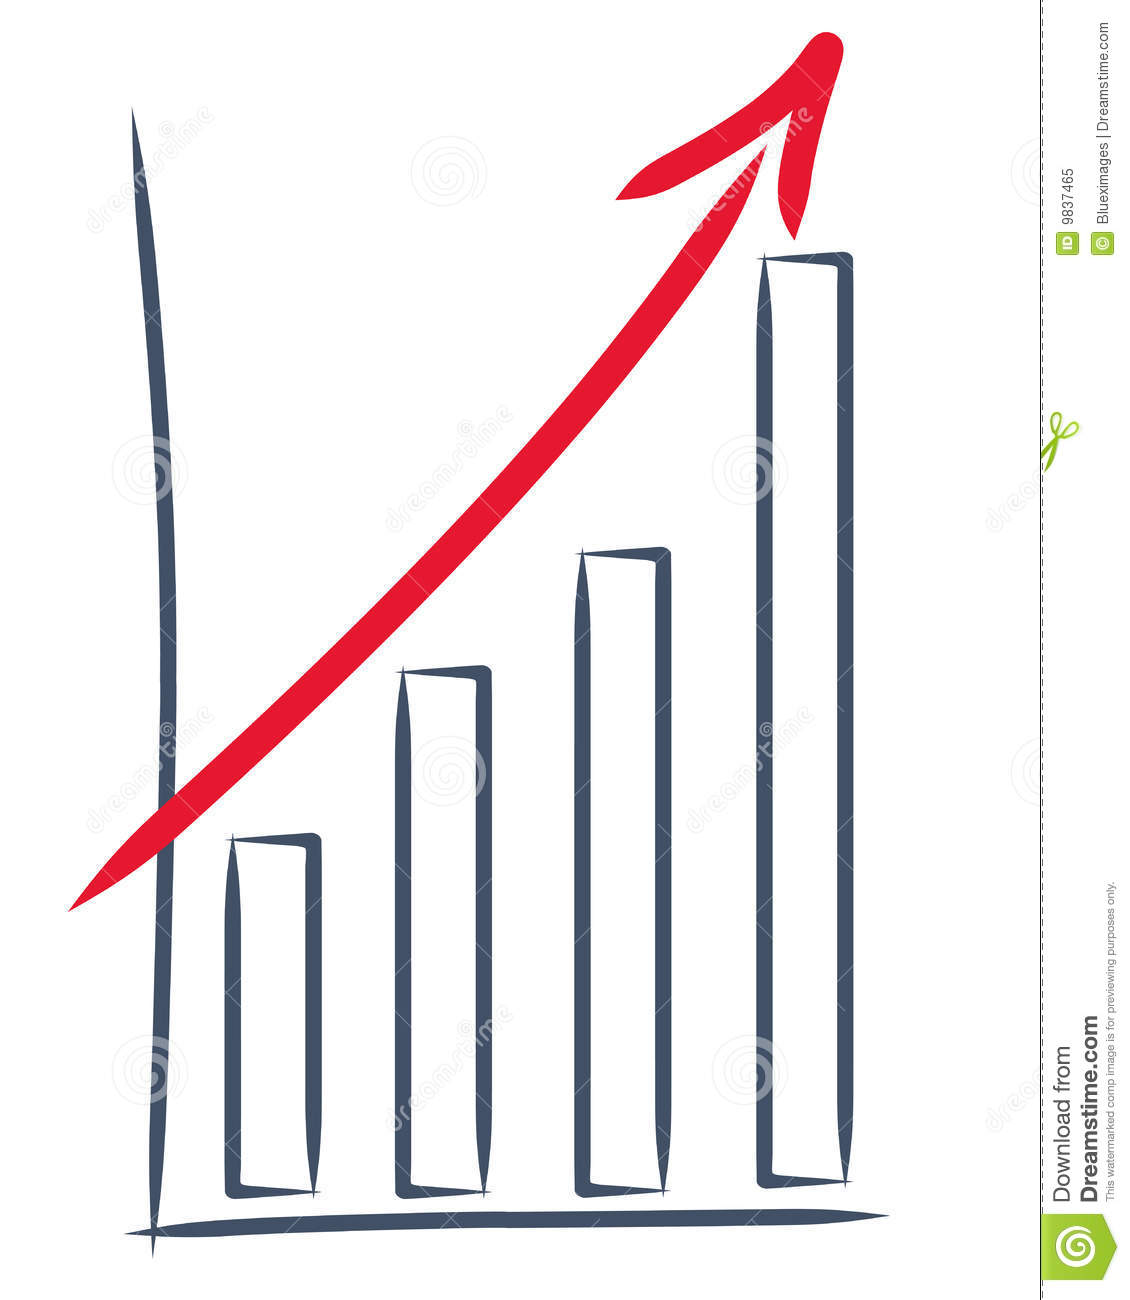 Drawing Of A Sales Increase And Upward Trend